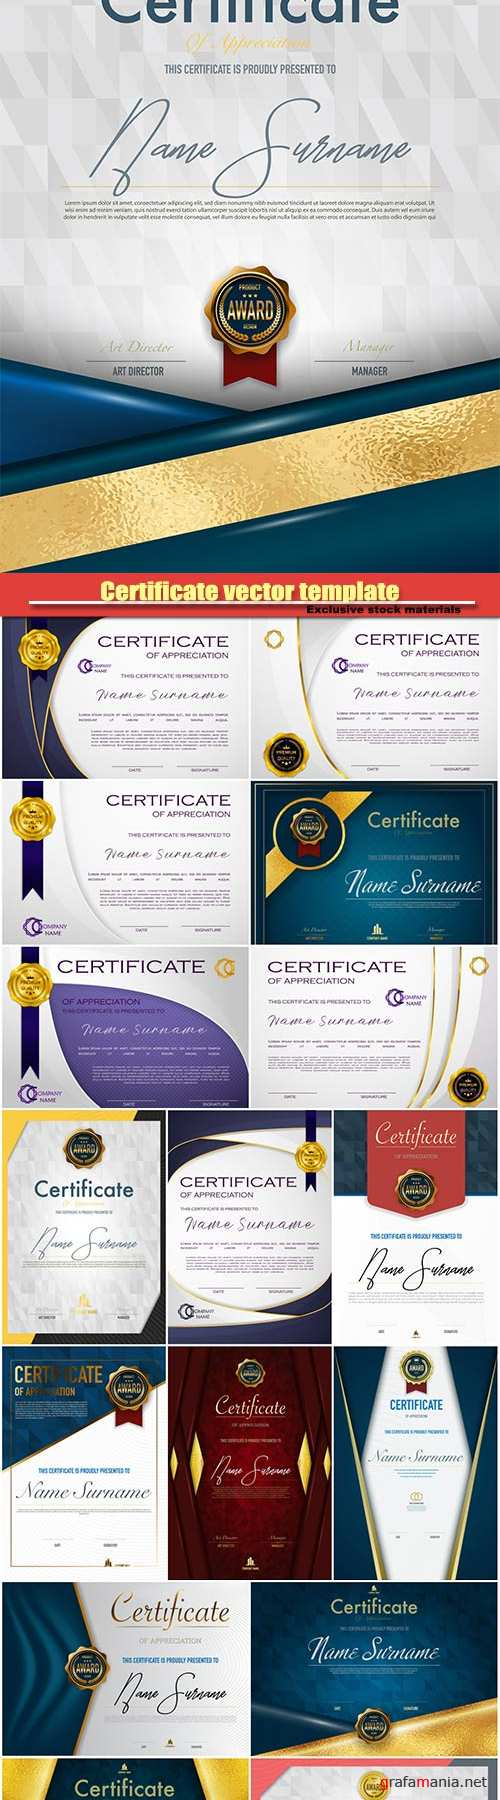 Certificate vector template luxury and diploma